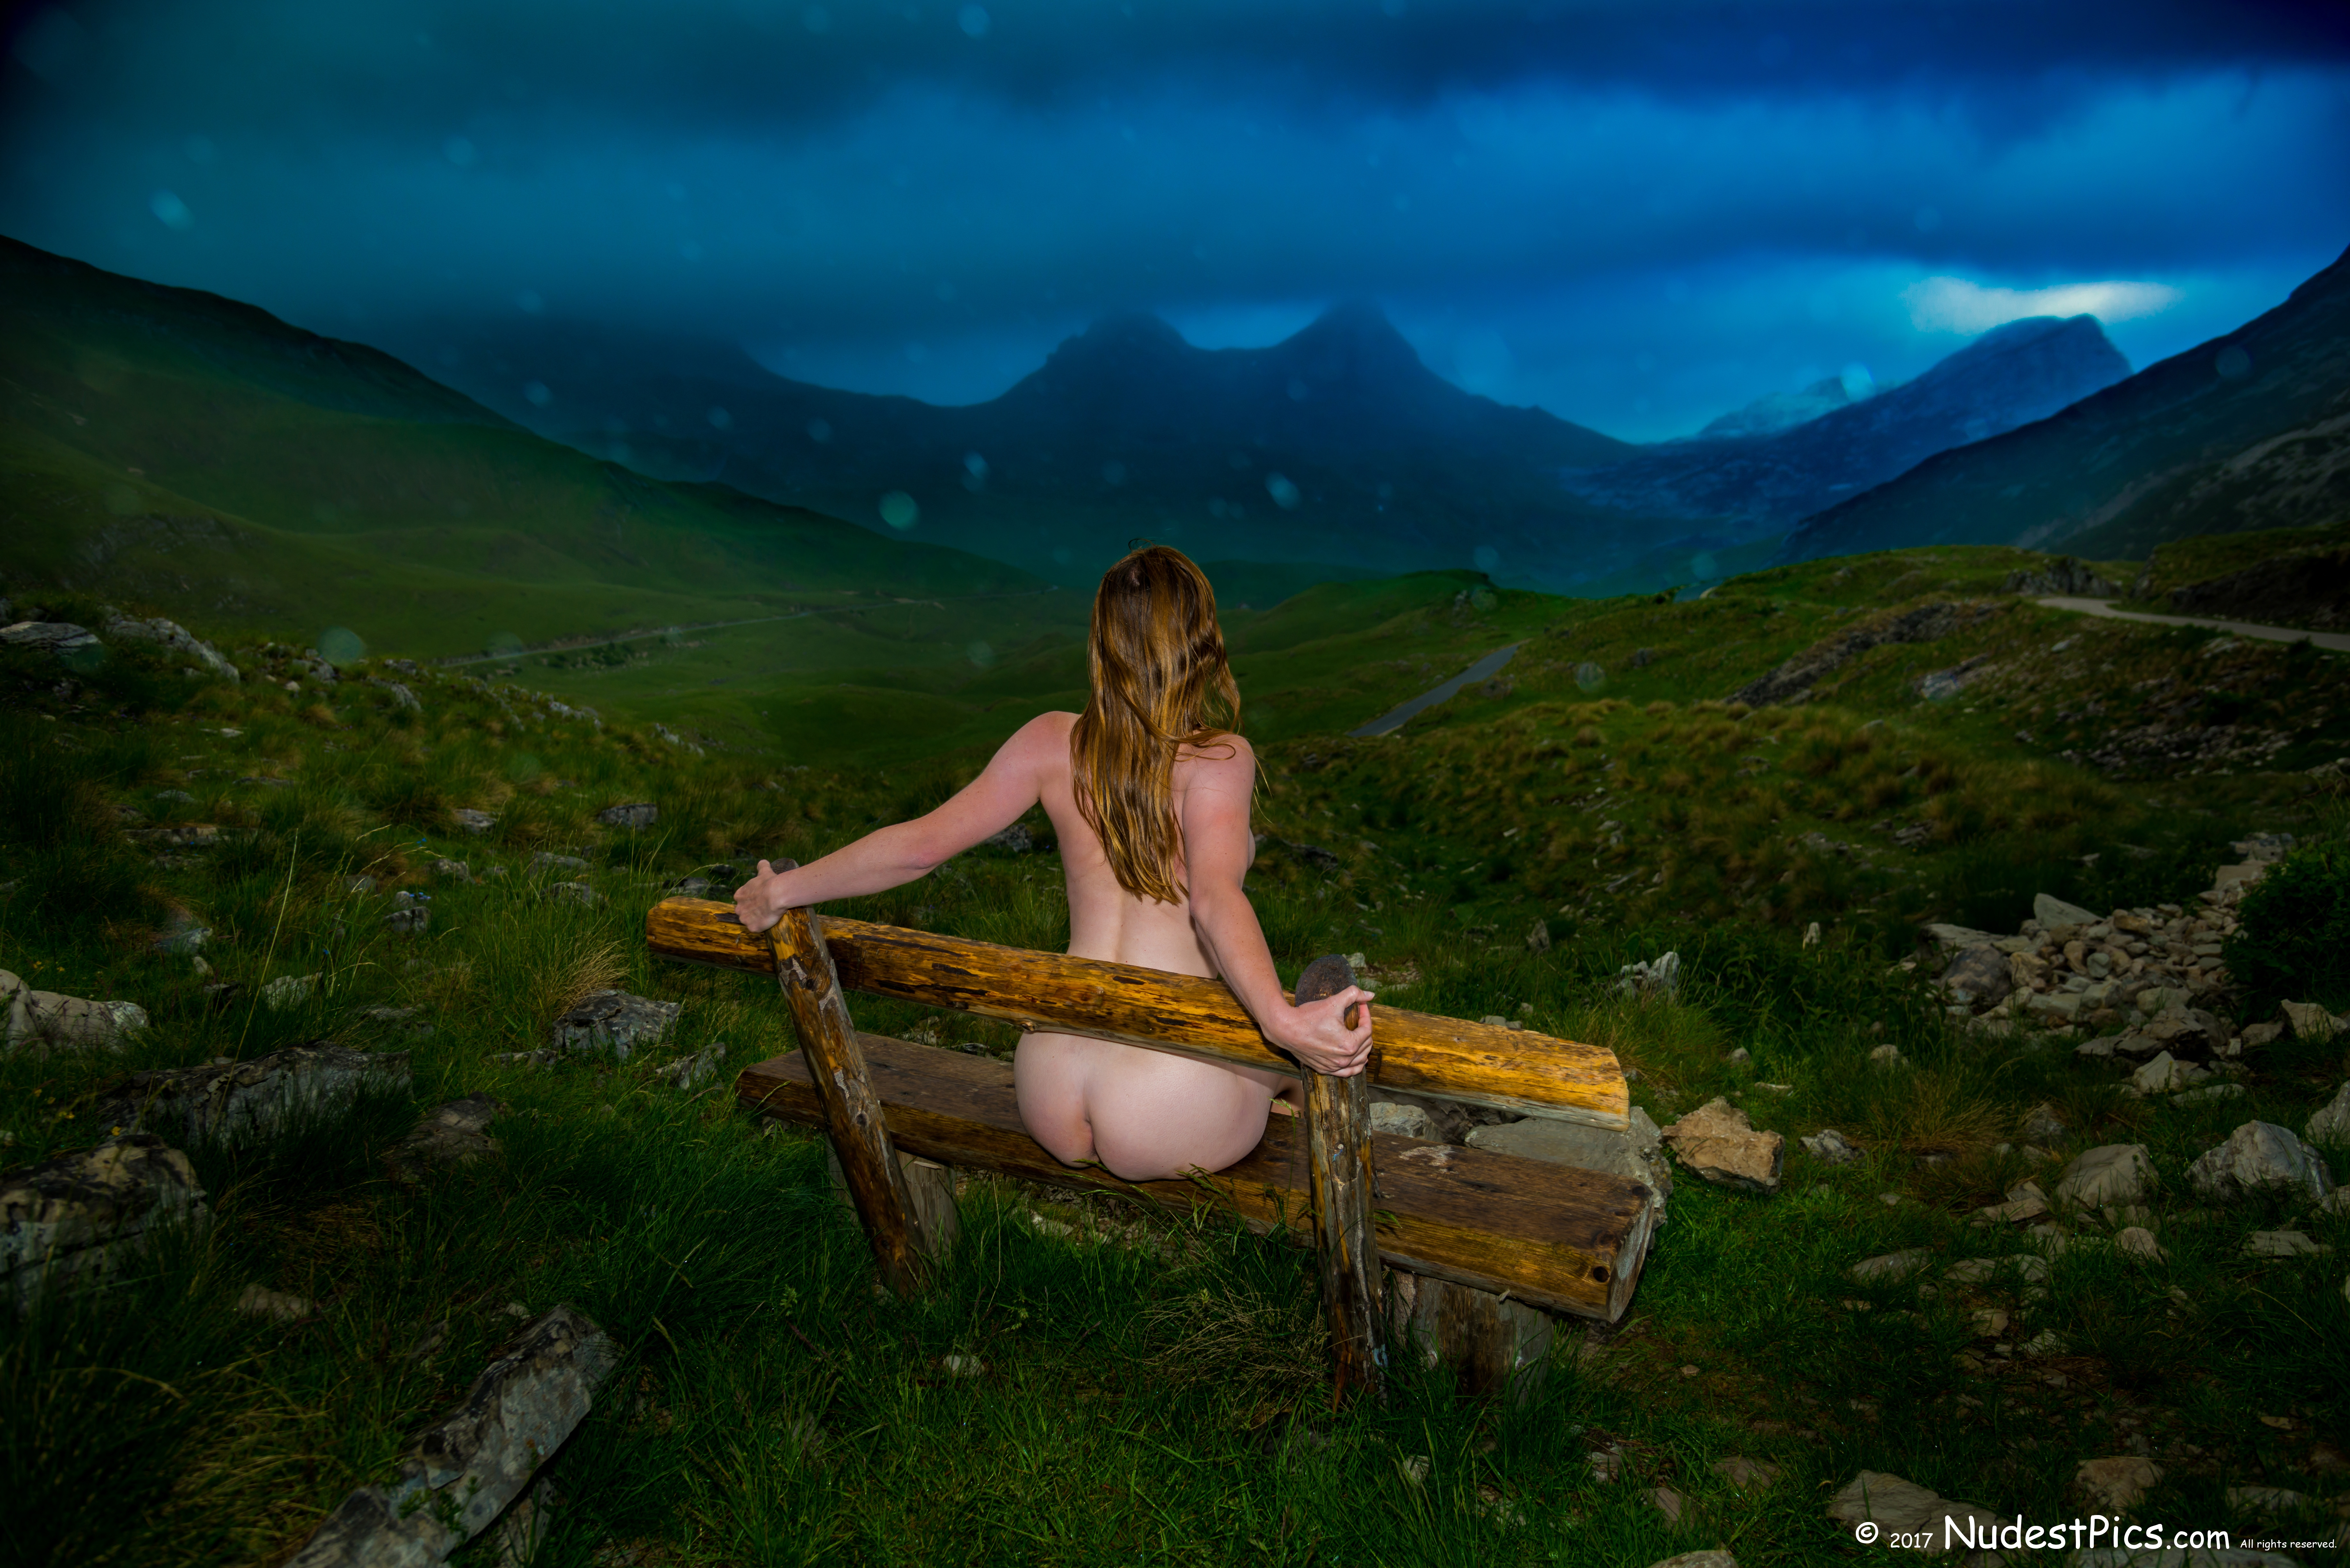 Naked Girl on Bench Watching the Devi'l Mountain